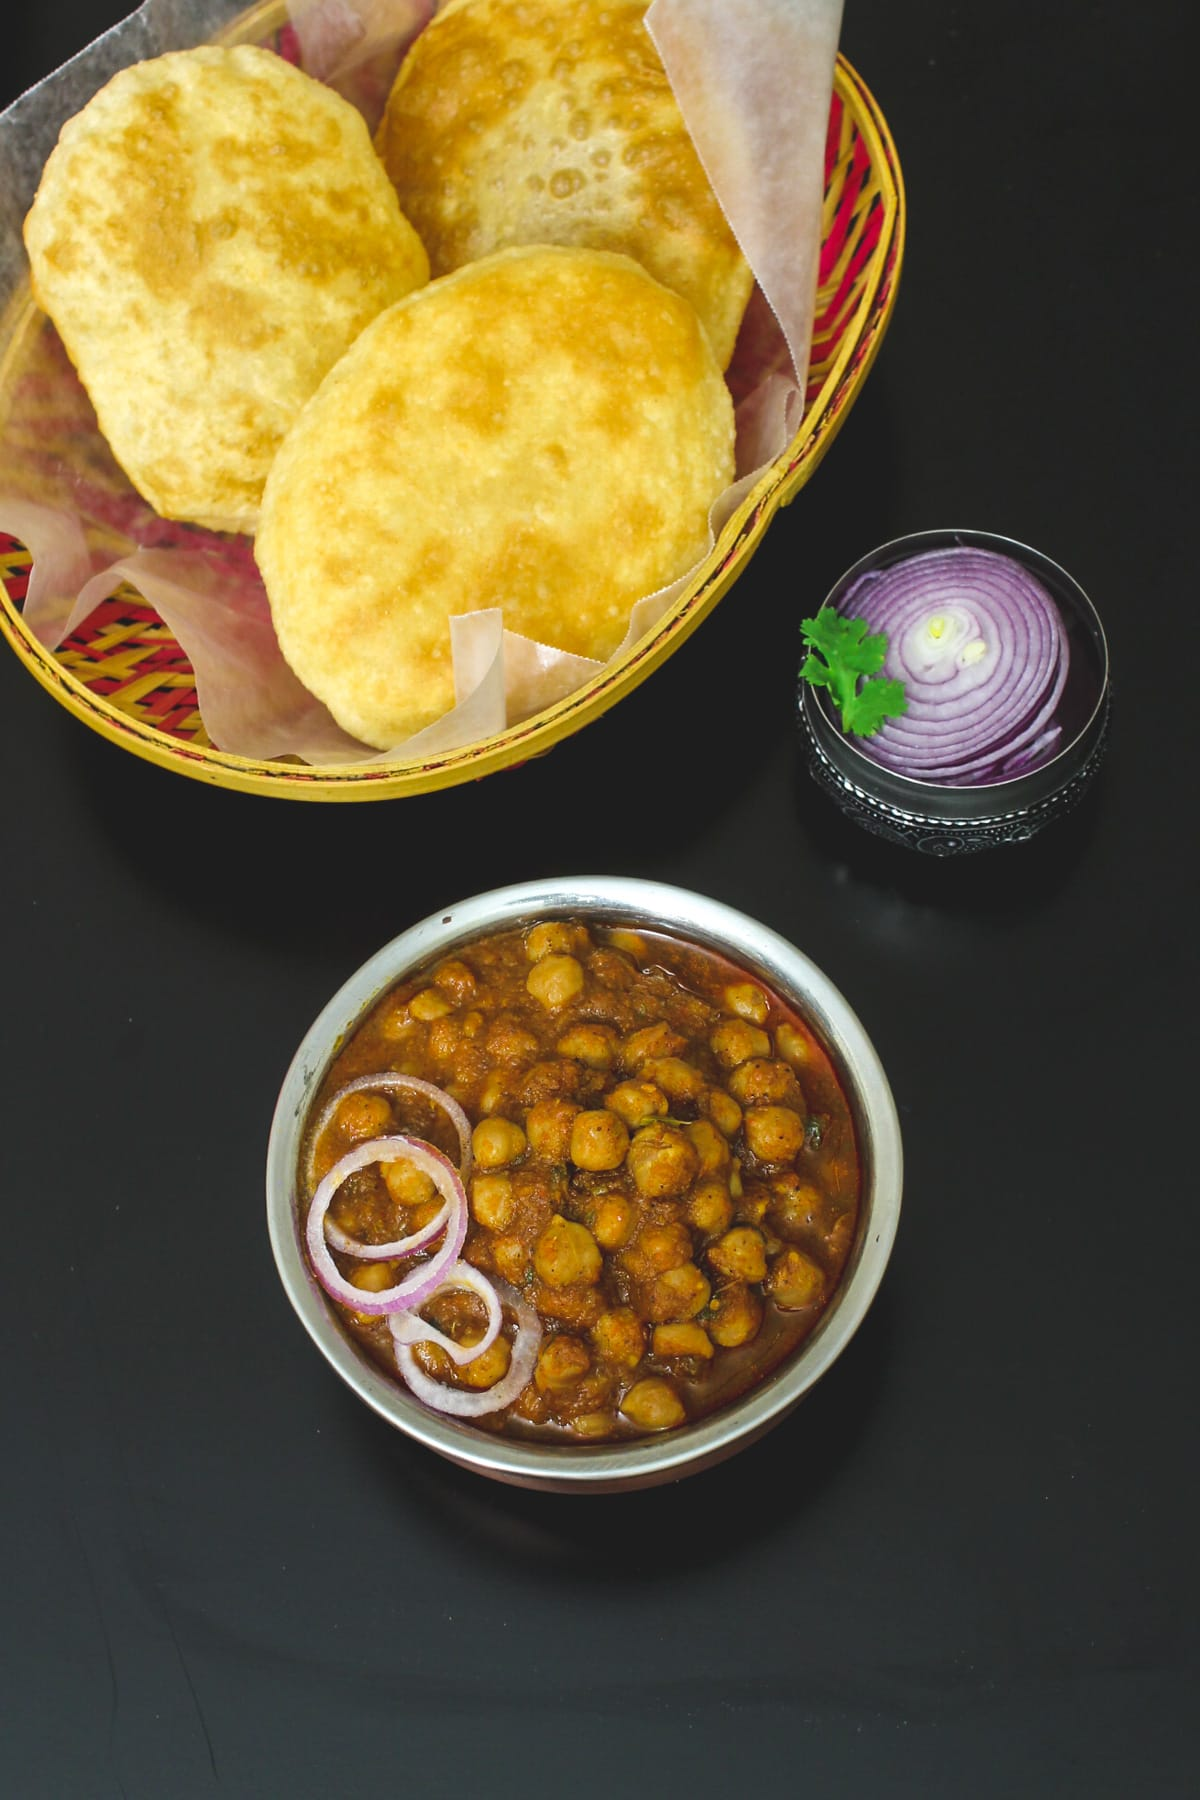 Punjabi chole served with onion and bhatura.